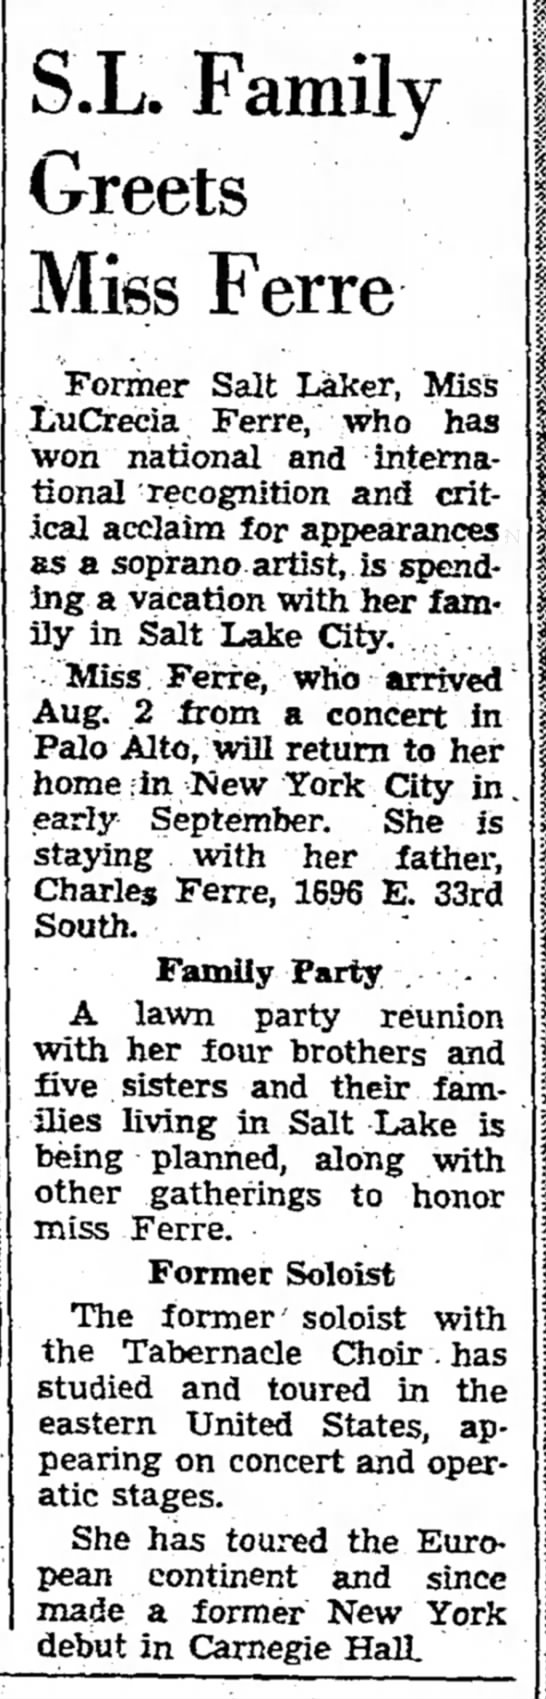 11 Aug 1960 - S.L. Family Greets Miss Ferre Former Salt...